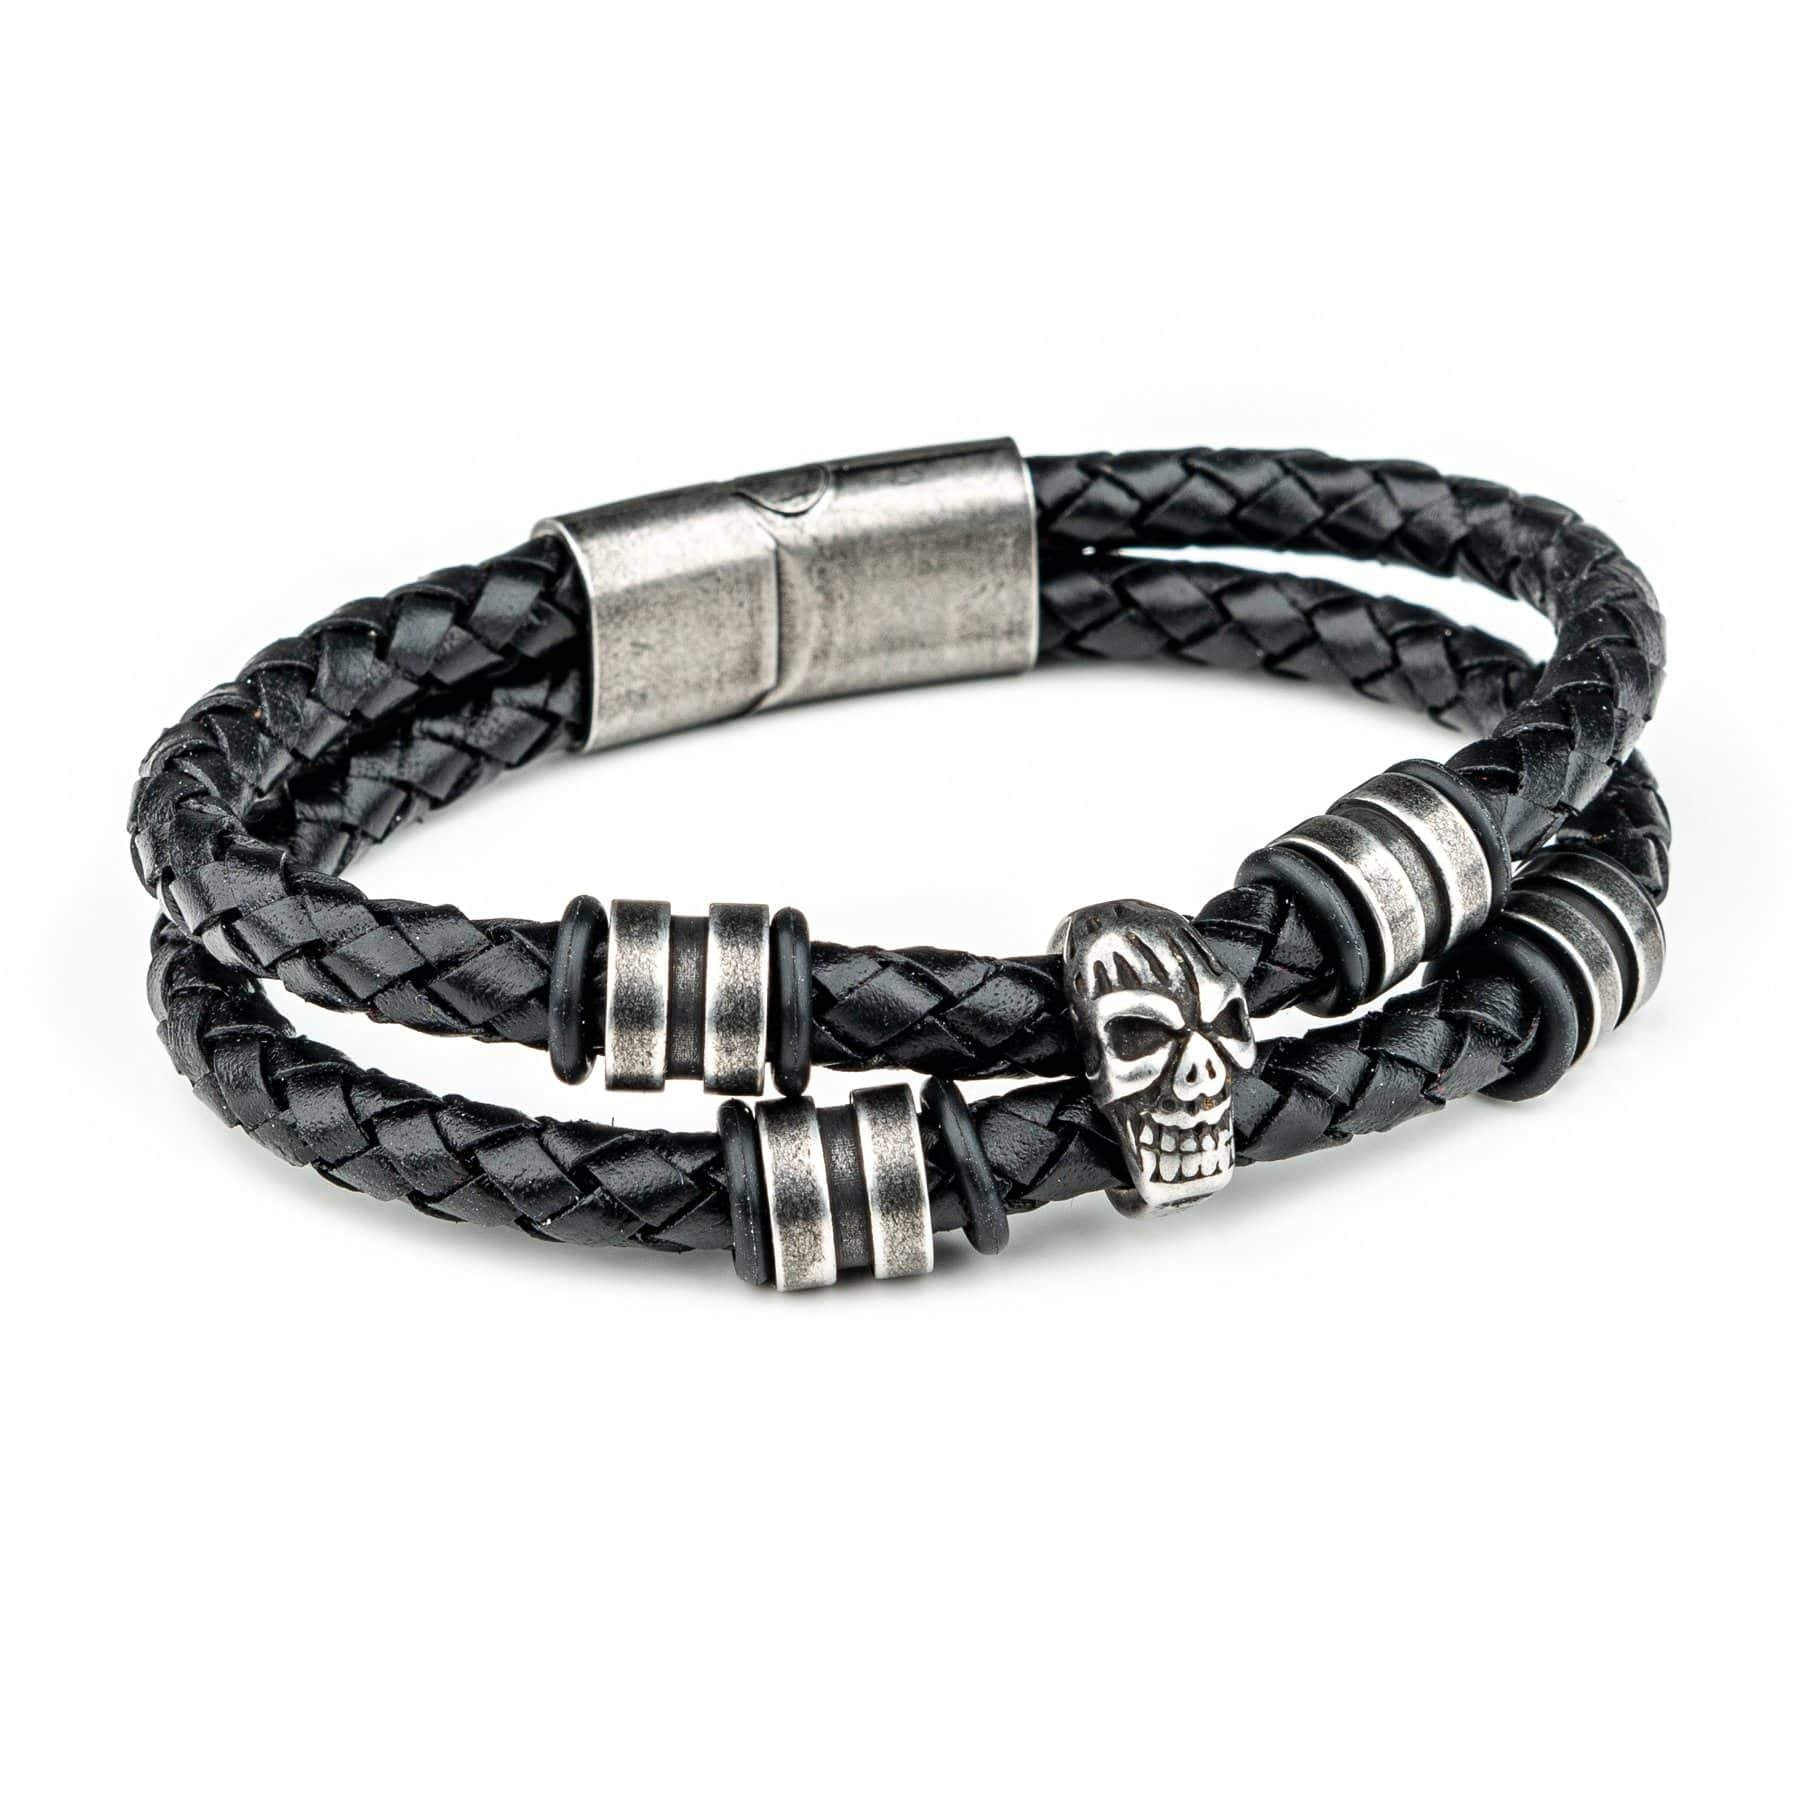 Wornstar Clothing Healer stainless steel skull and beads bracelet with leather cord.